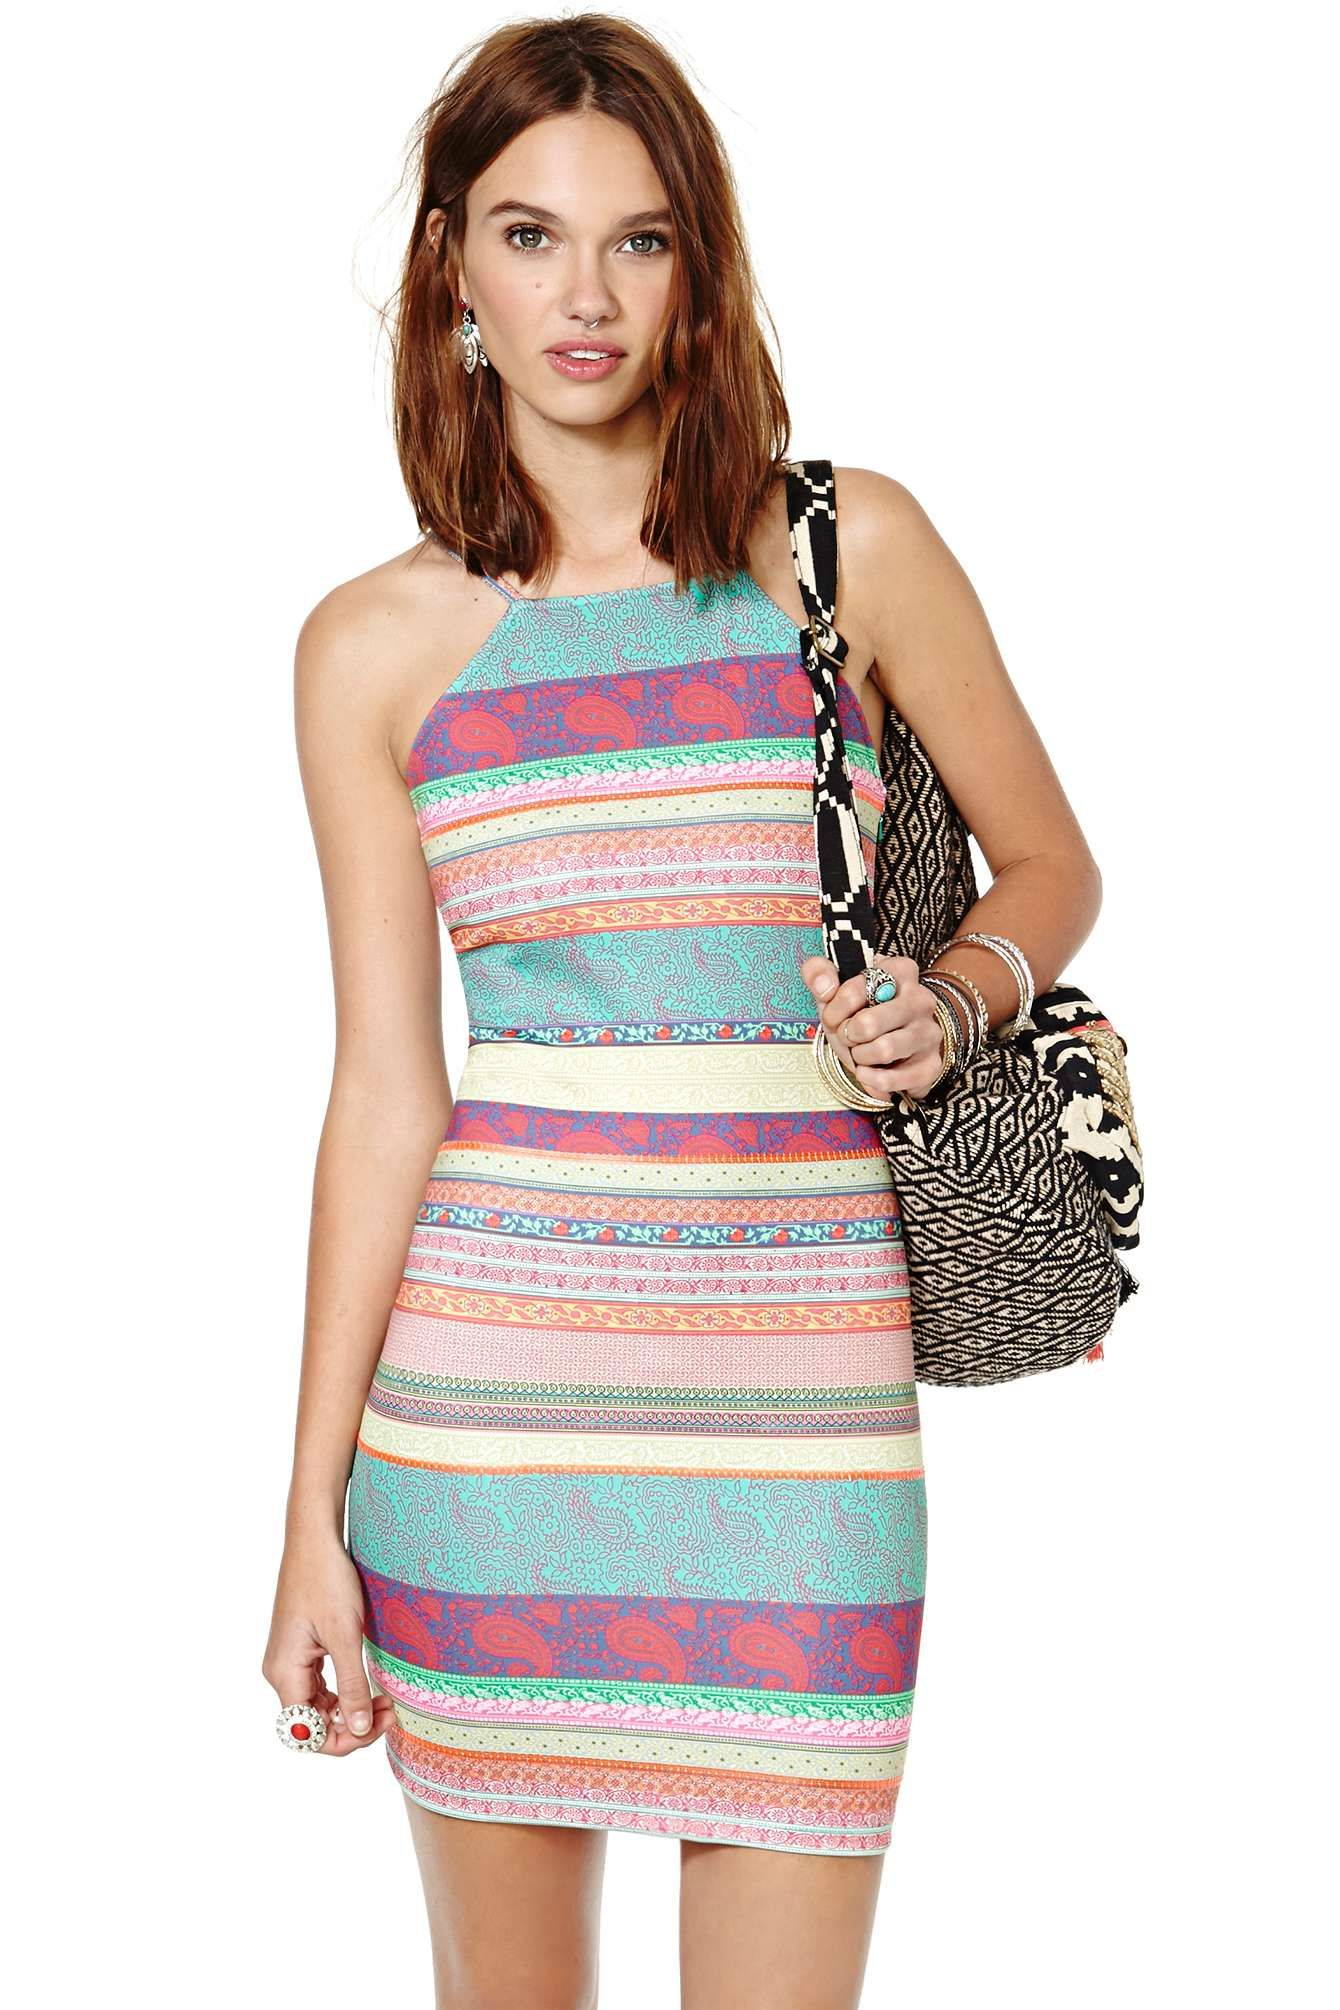 MinkPink Jasmine Paisley Dress | Shop What's New at Nasty Gal dresses,girl,fashion share by vthebox.com